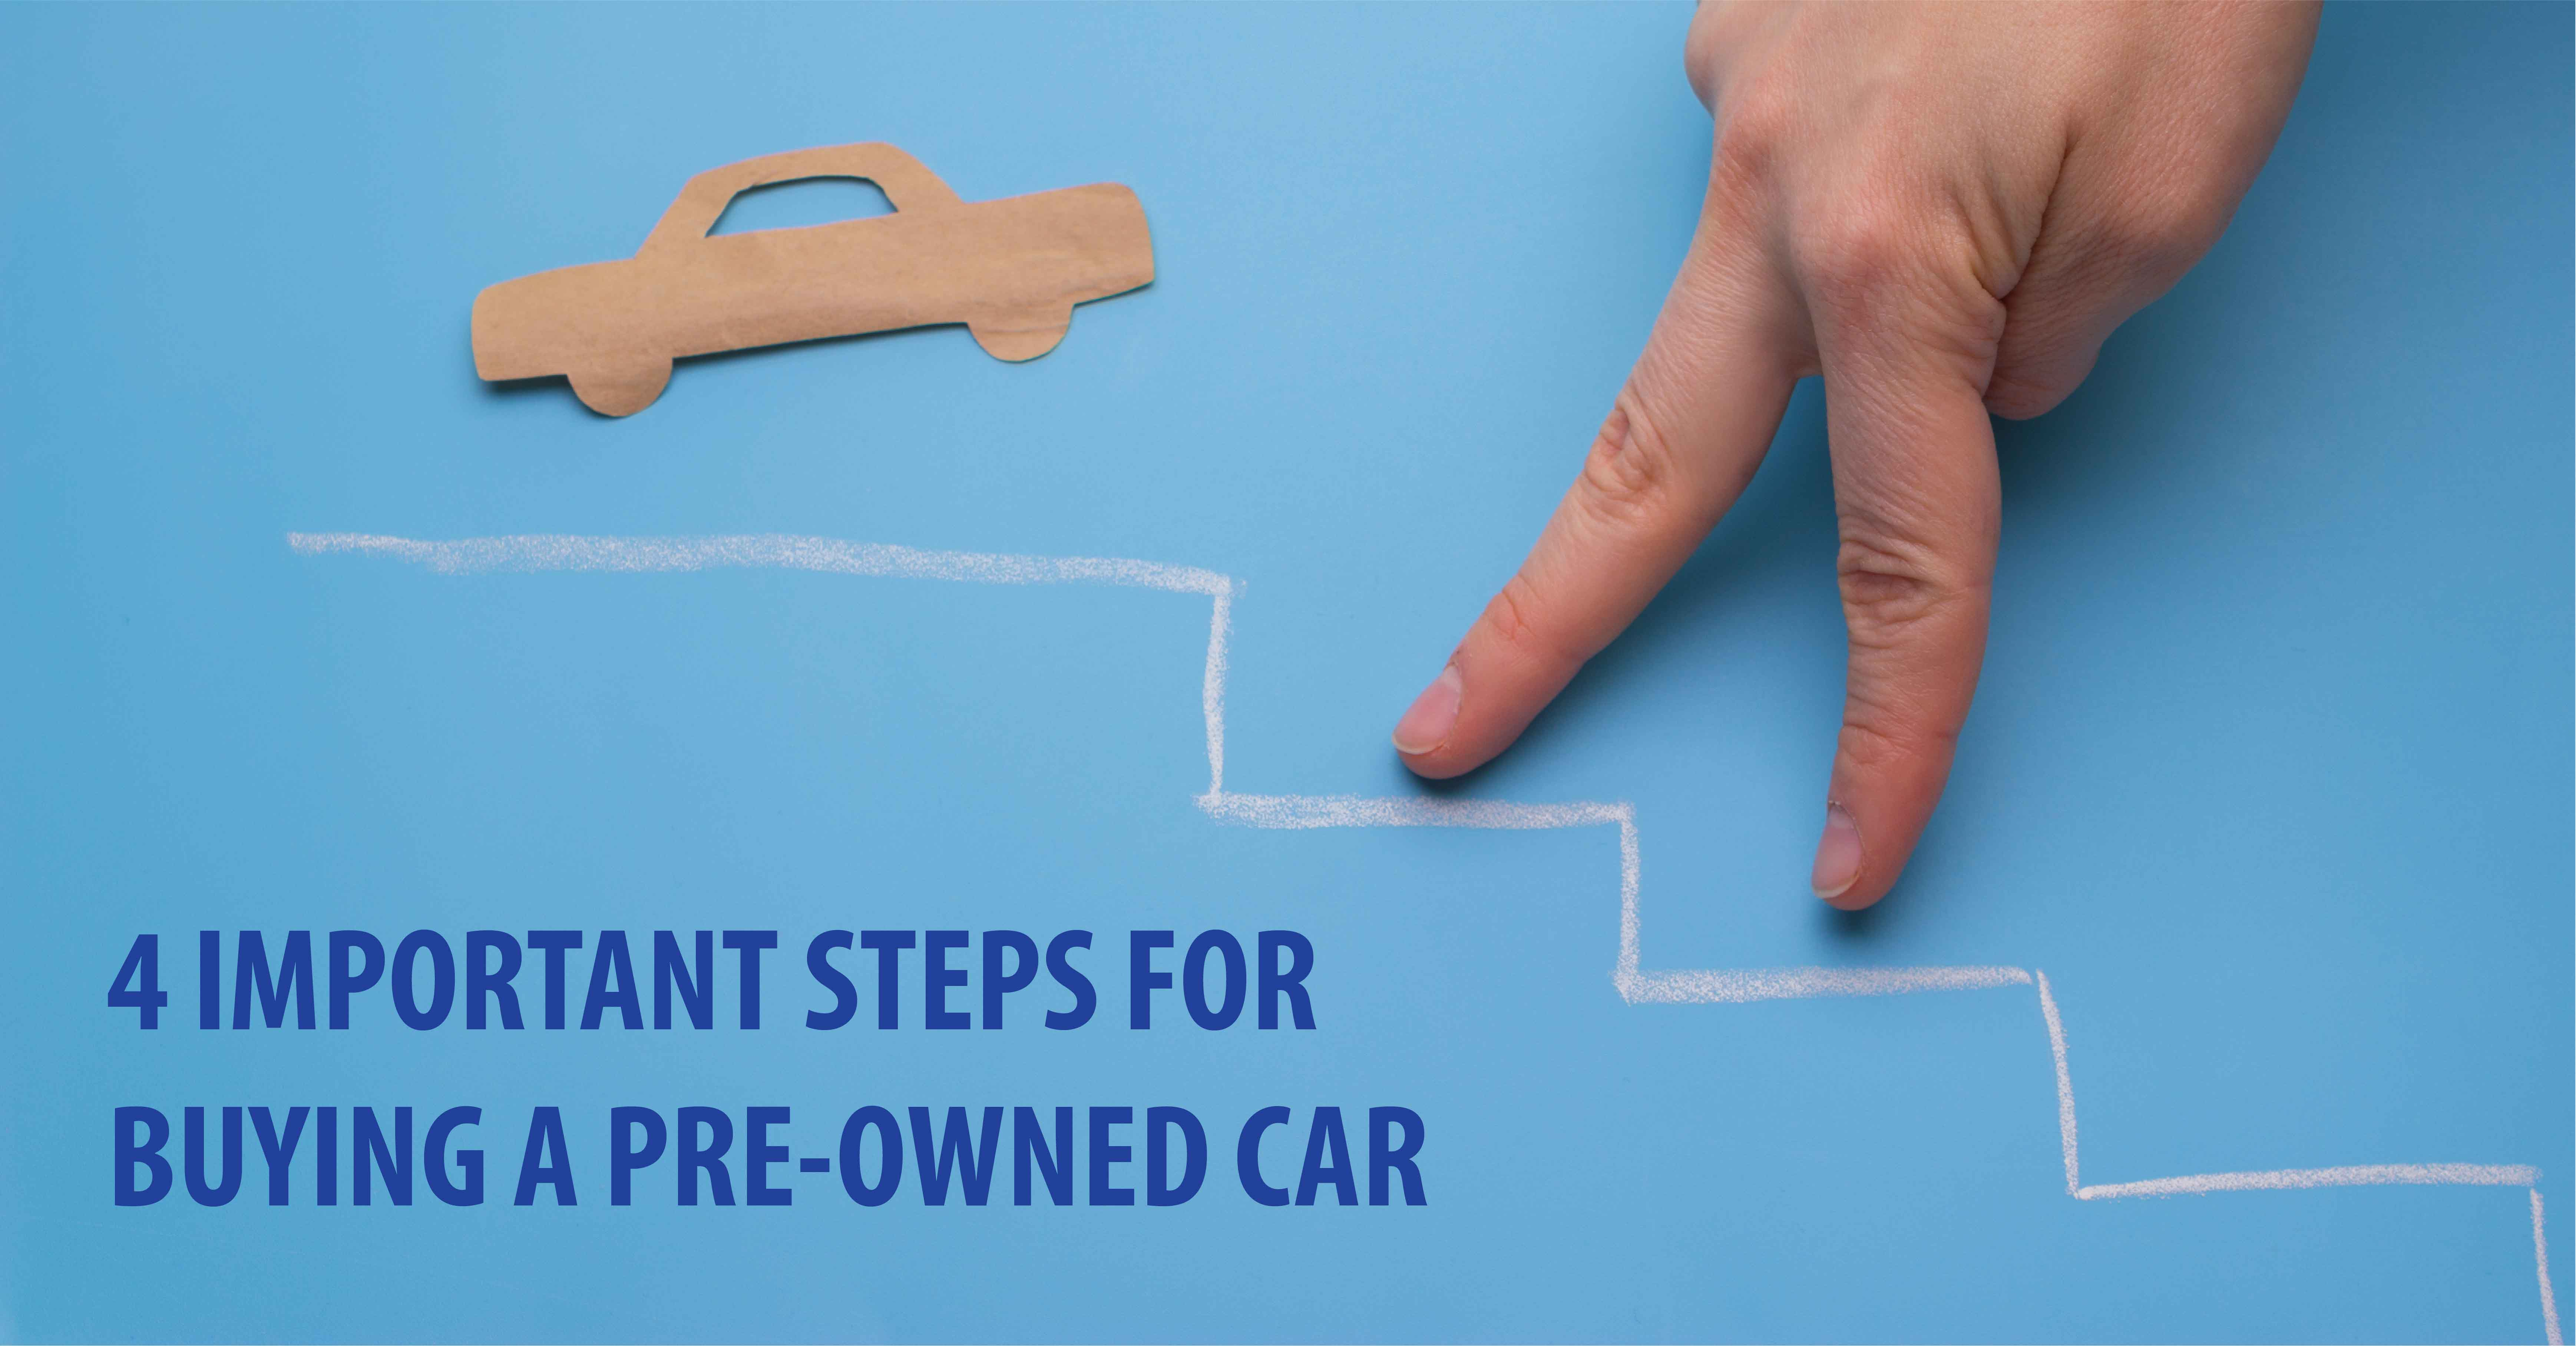 4 IMPORTANT STEPS FOR BUYING A PRE-OWNED CAR